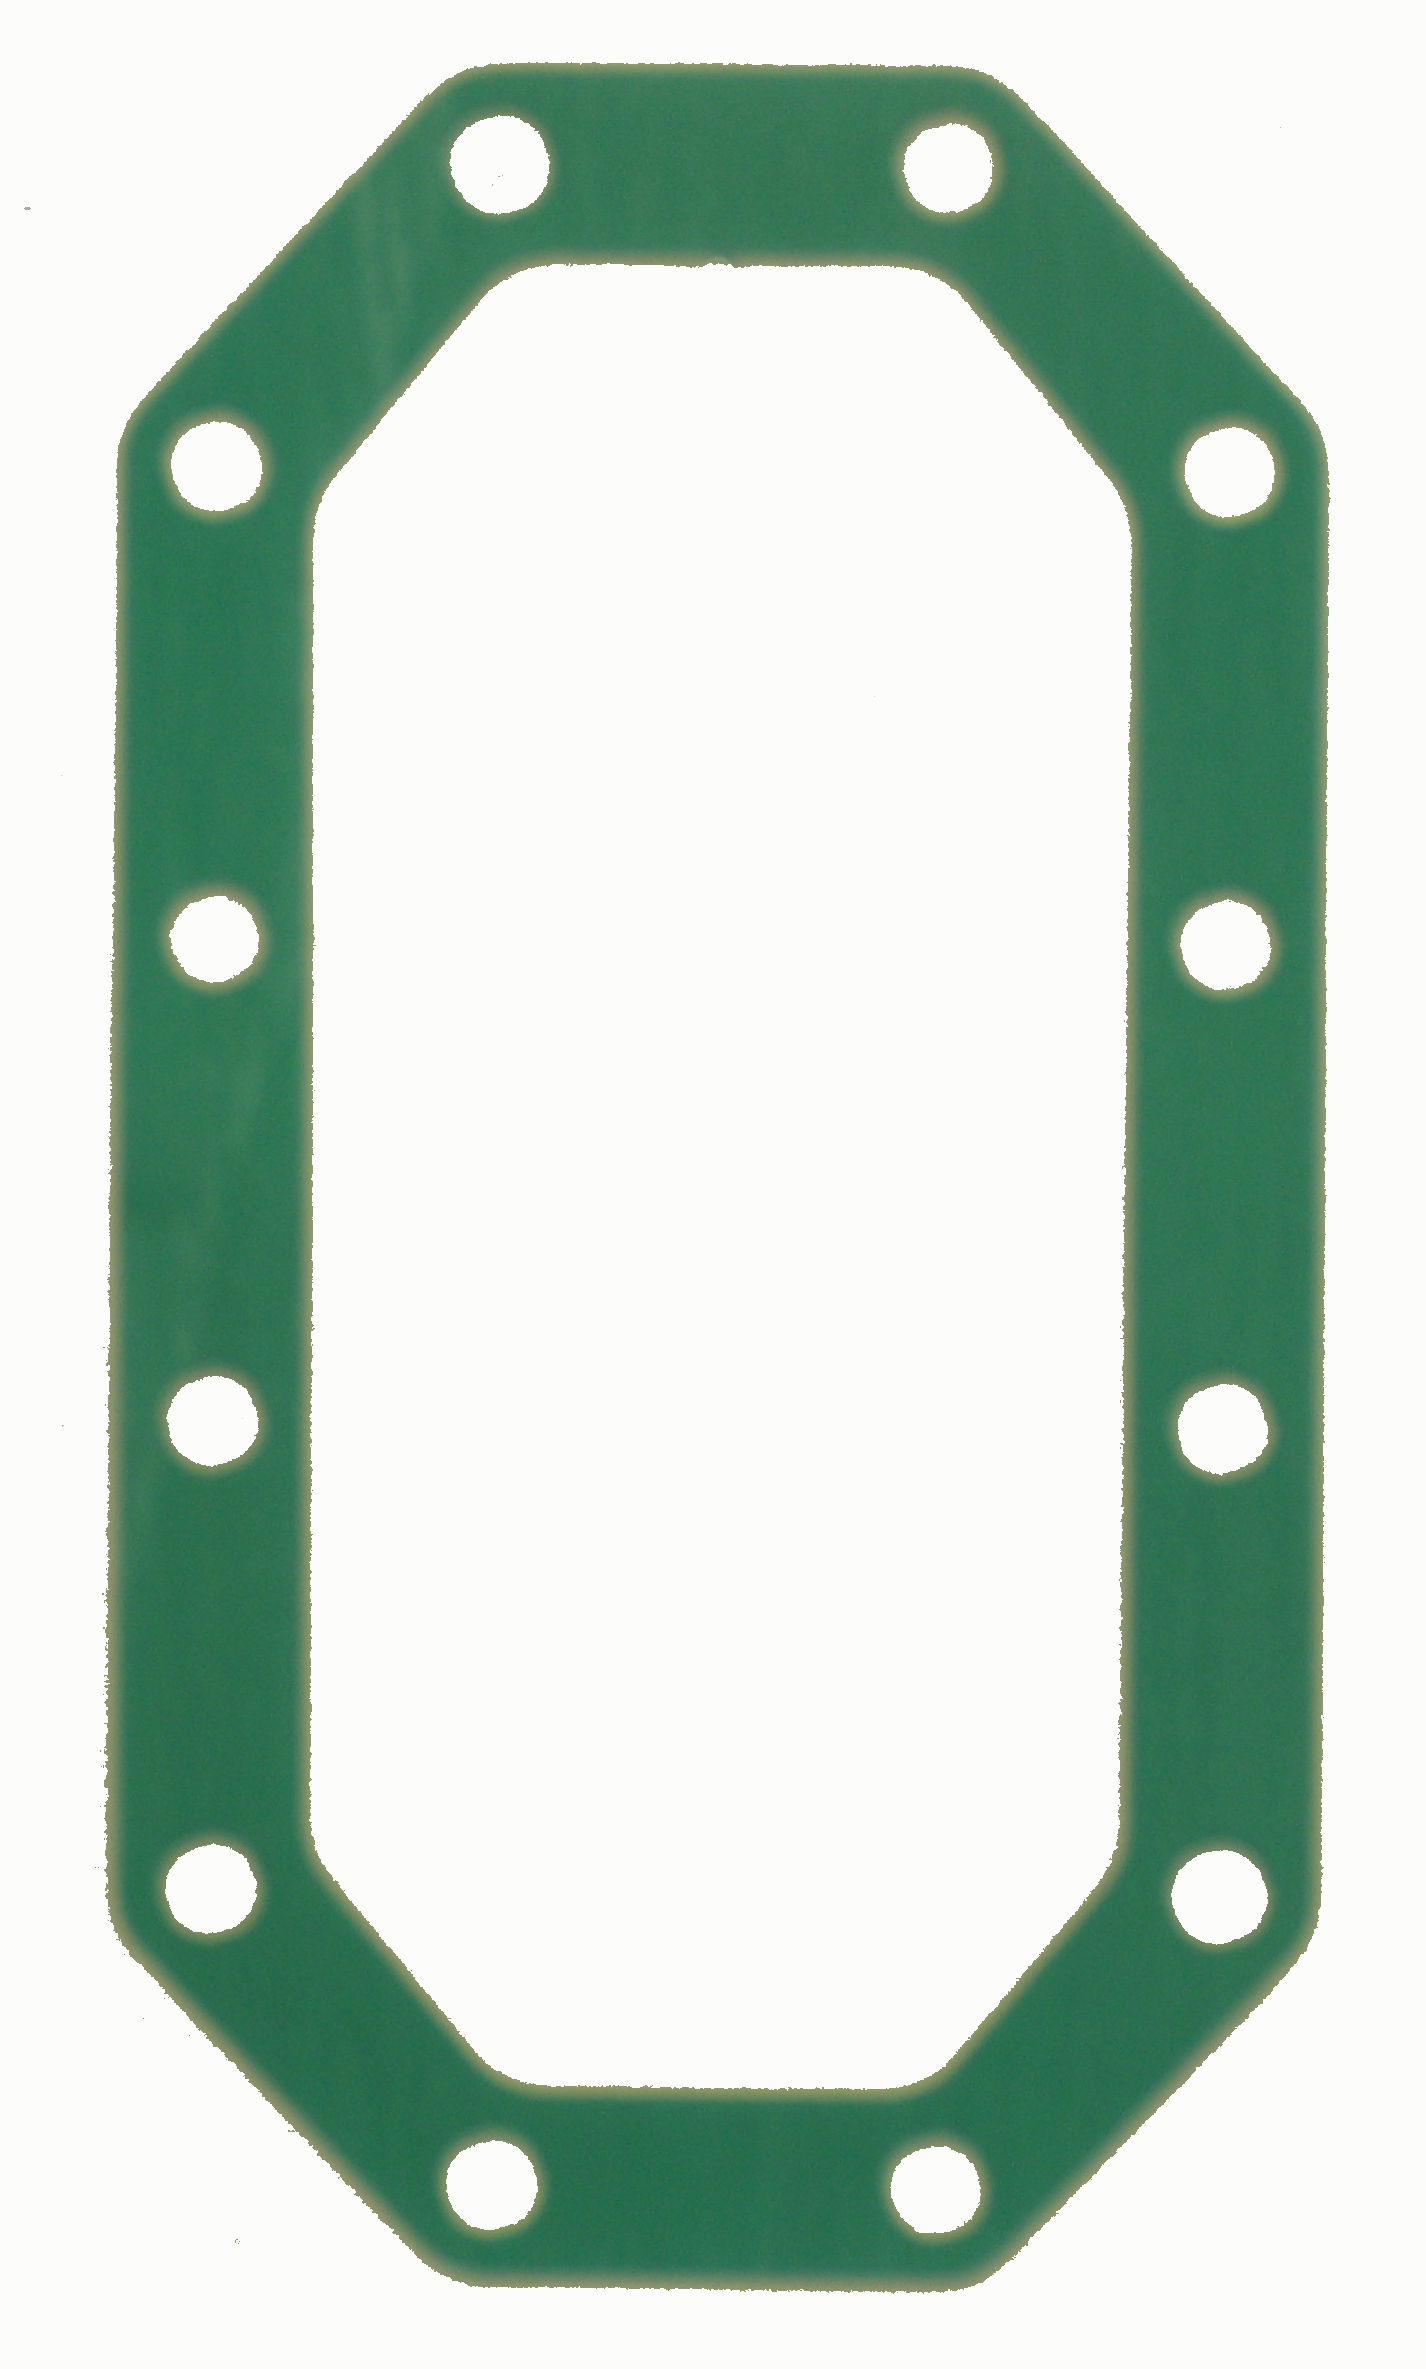 GKT-6344 Gasket; R/N GKT-952 (Made in the USA)